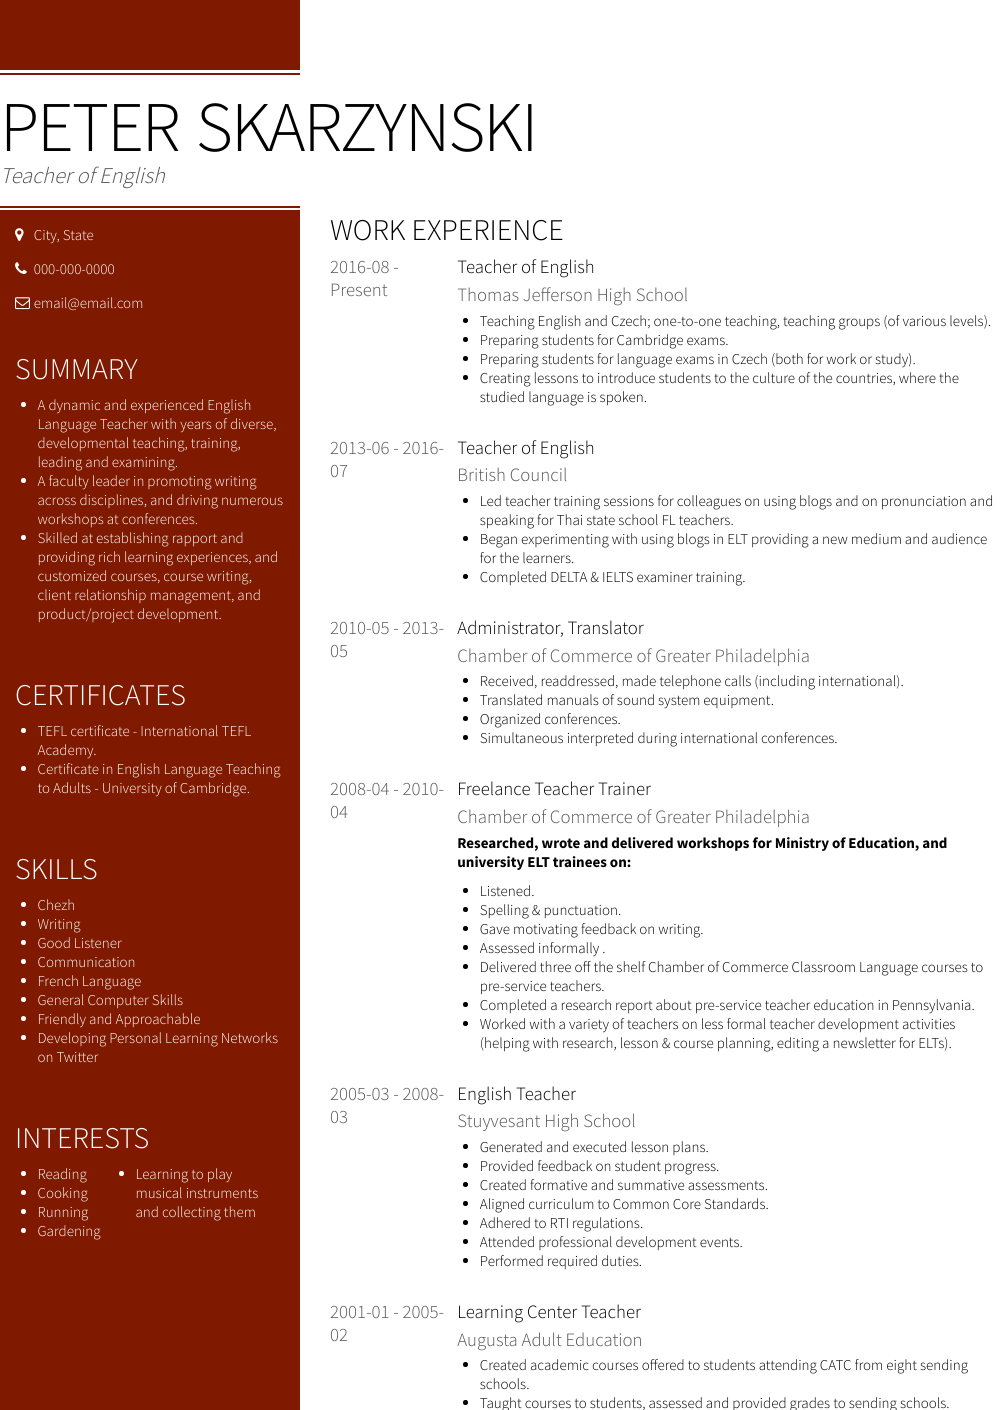 English Teacher - Resume Samples & Templates | VisualCV